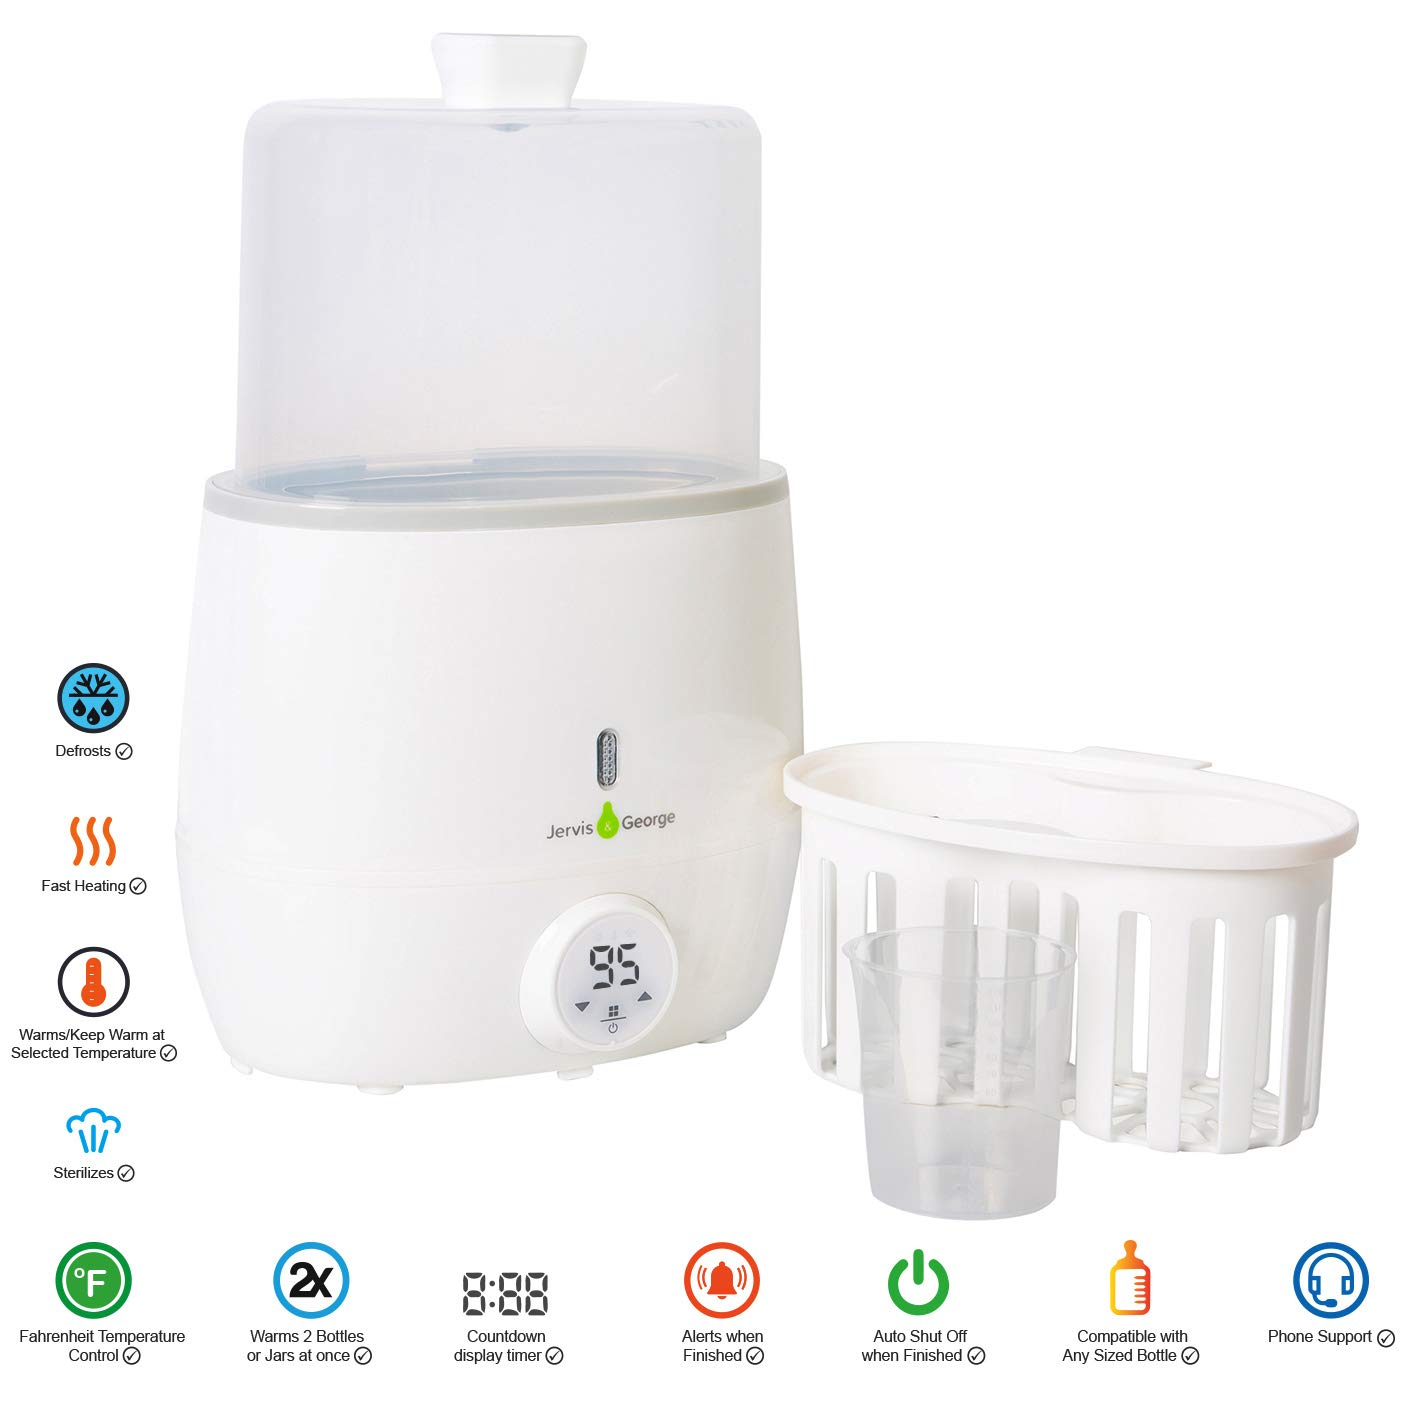 Count-Down Timer with Alerting Fahrenheit Temperature Control Fits All Bottles Sizes Jervis /& George Baby Bottle Warmer /& Sterilizer Defrost Function